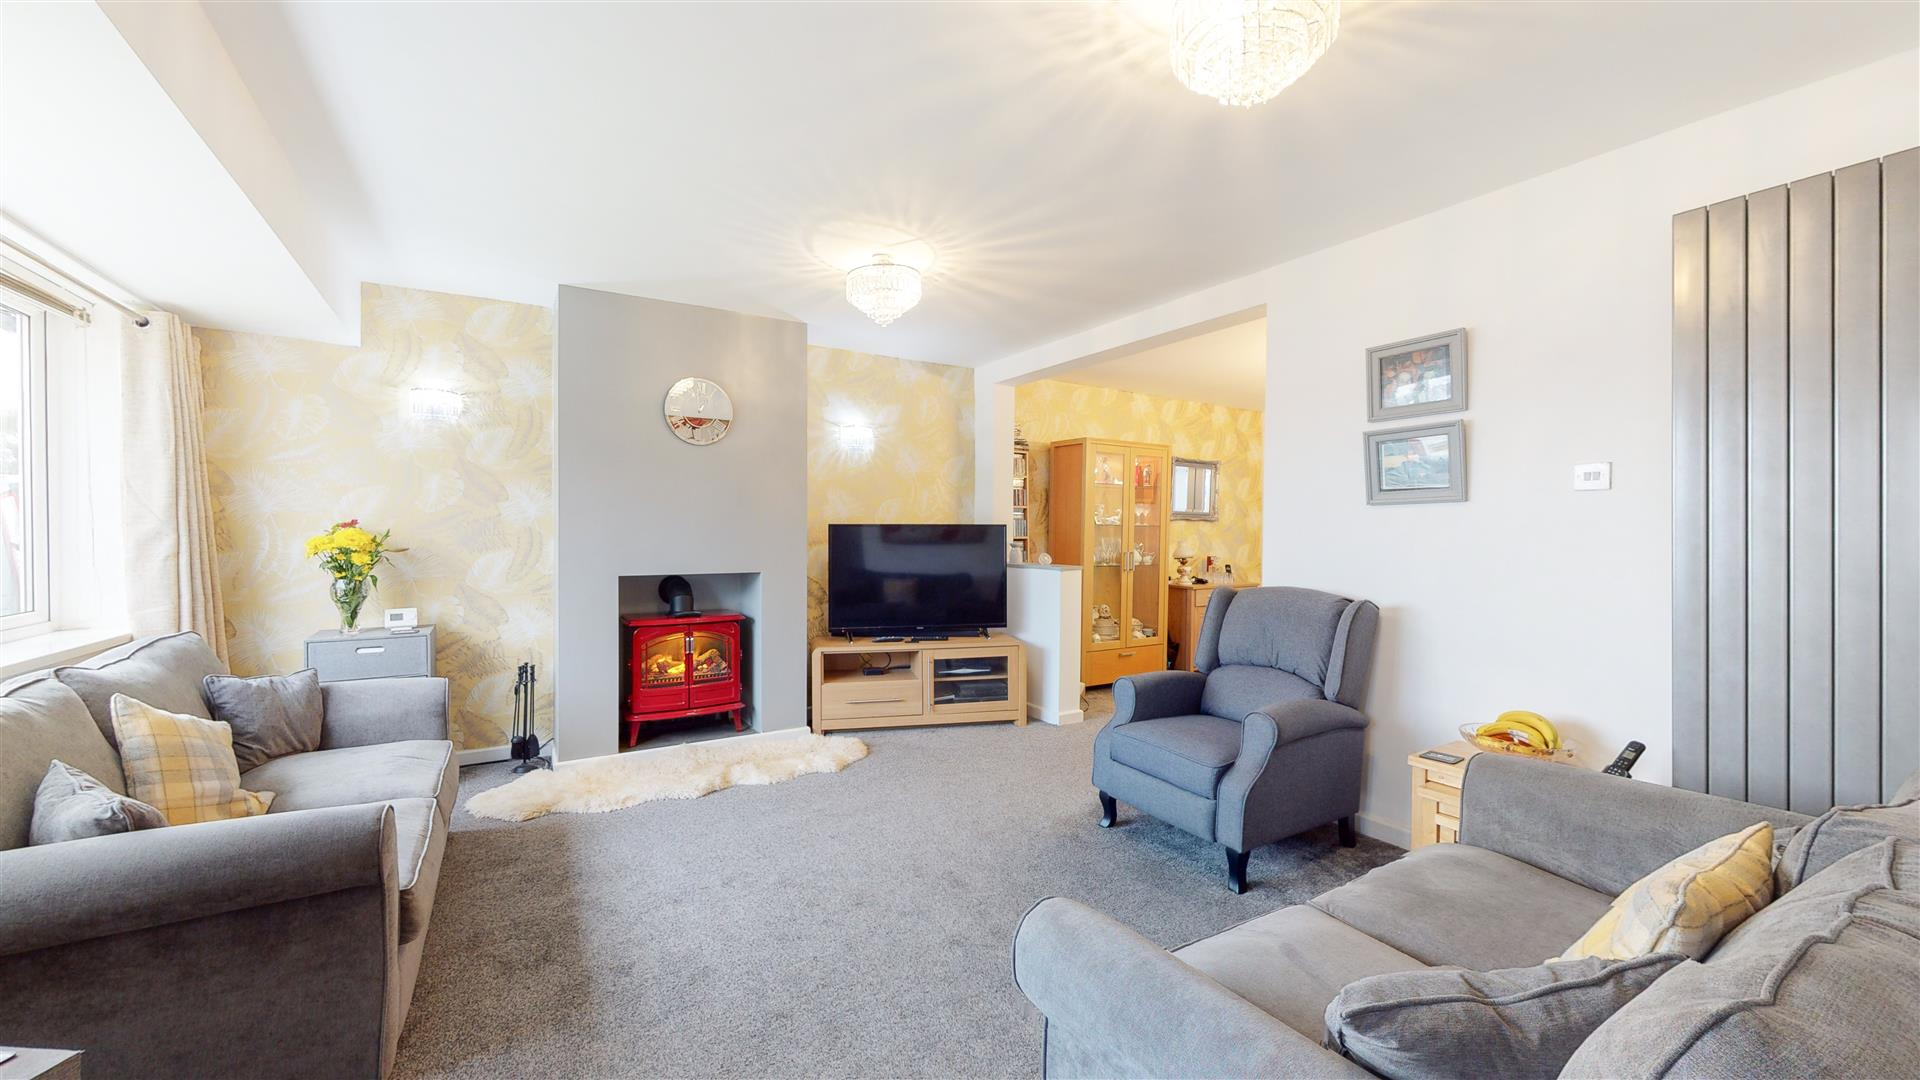 3 bed semi-detached house for sale in Cramlington, NE23 7DL - Property Image 1